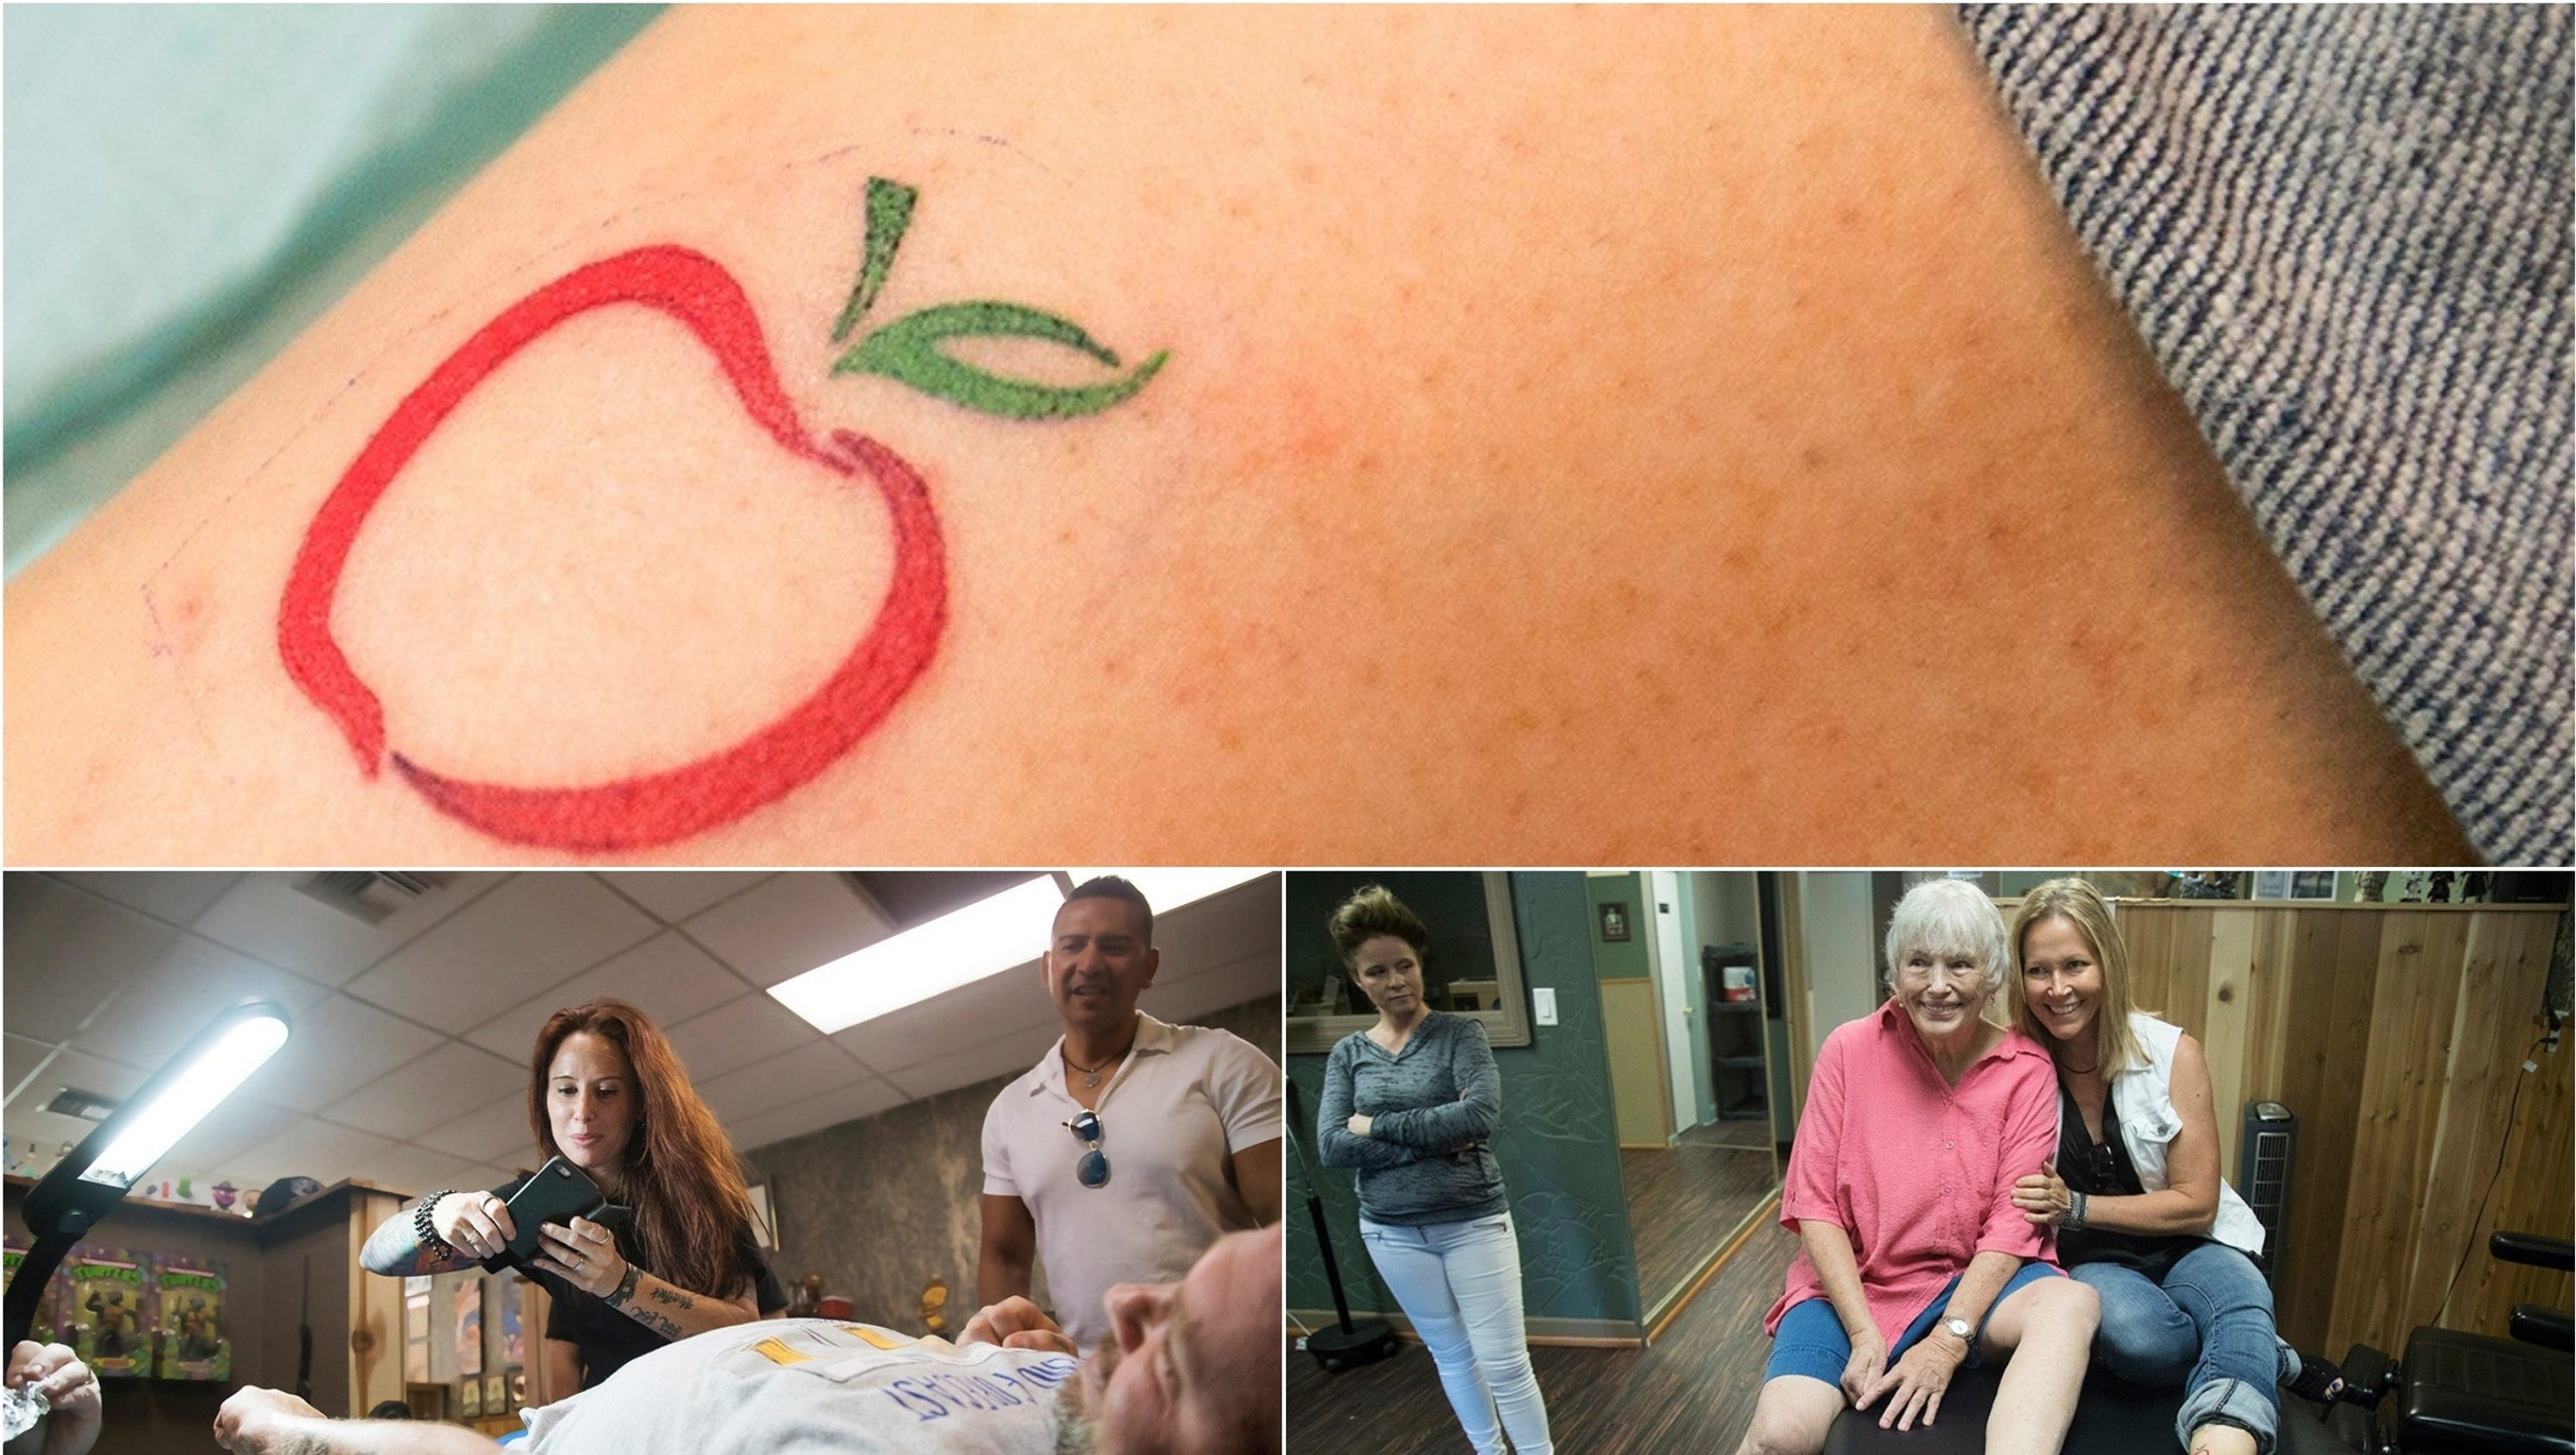 Apple logo tattoo symbolizes hope for many in fort myers for Tattoo fort myers